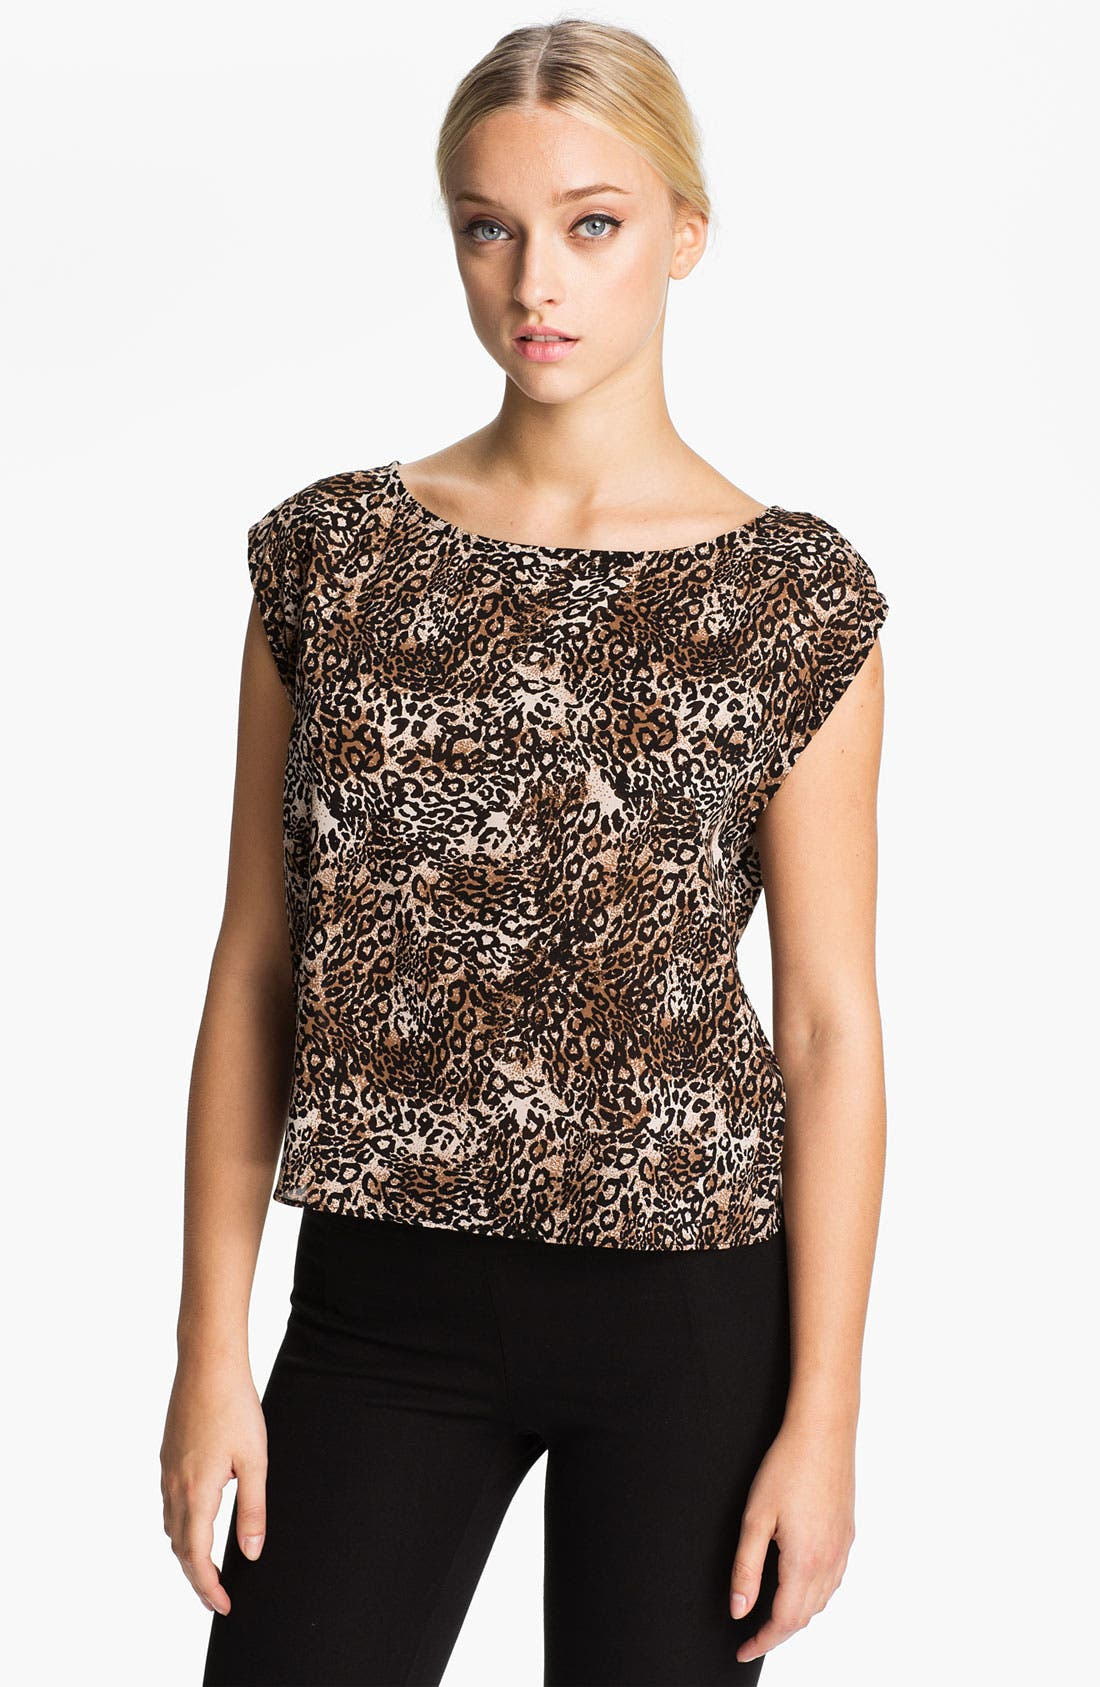 Alternate Image 1 Selected - Alice + Olivia 'Kinsley' Cheetah Print Top